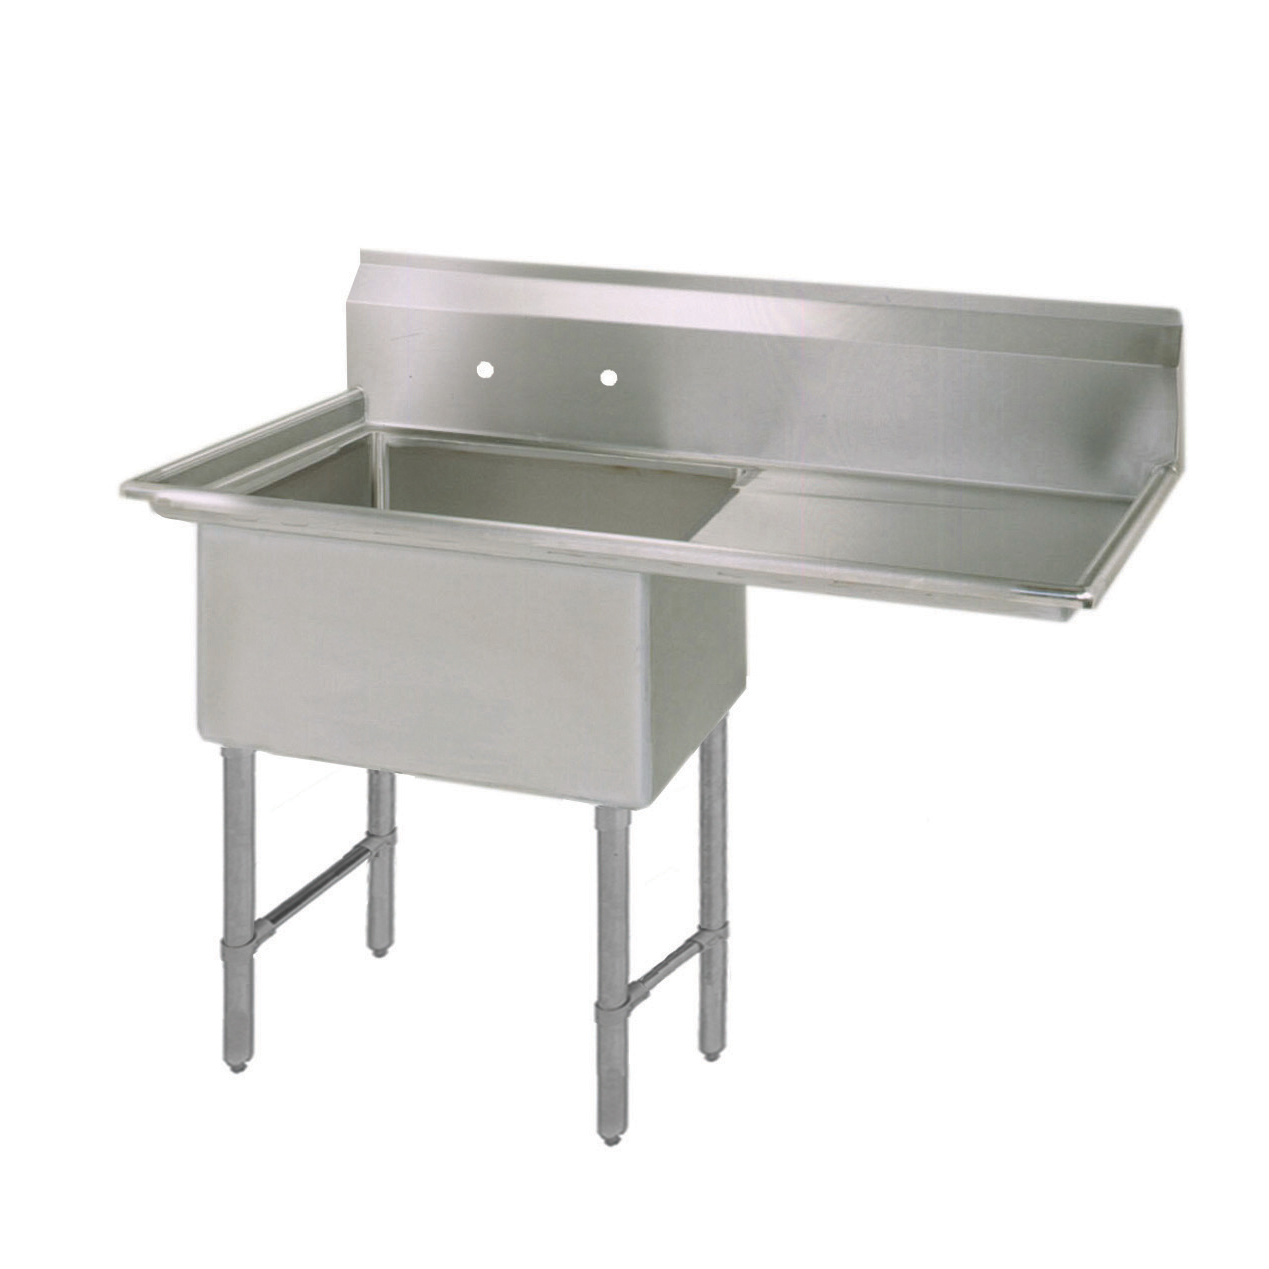 BK Resources BKS-1-1620-12-18RS sink, (1) one compartment